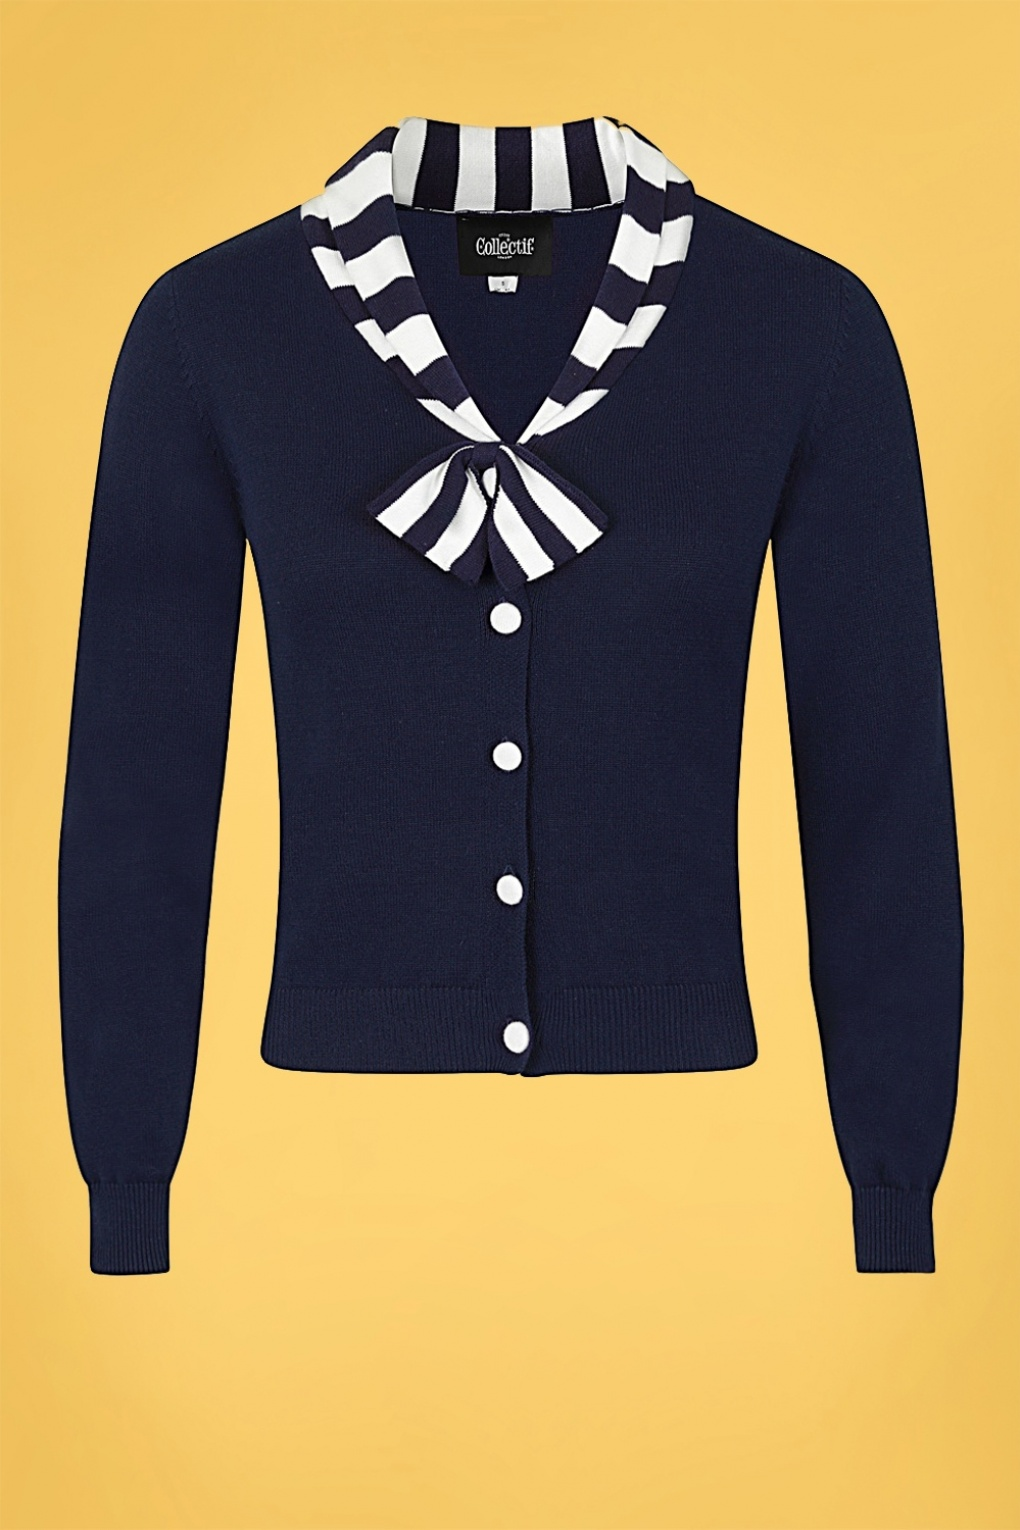 Vintage Sweaters, Retro Sweaters & Cardigan Ladies 50s Doreen Cardigan in Navy and White £28.47 AT vintagedancer.com